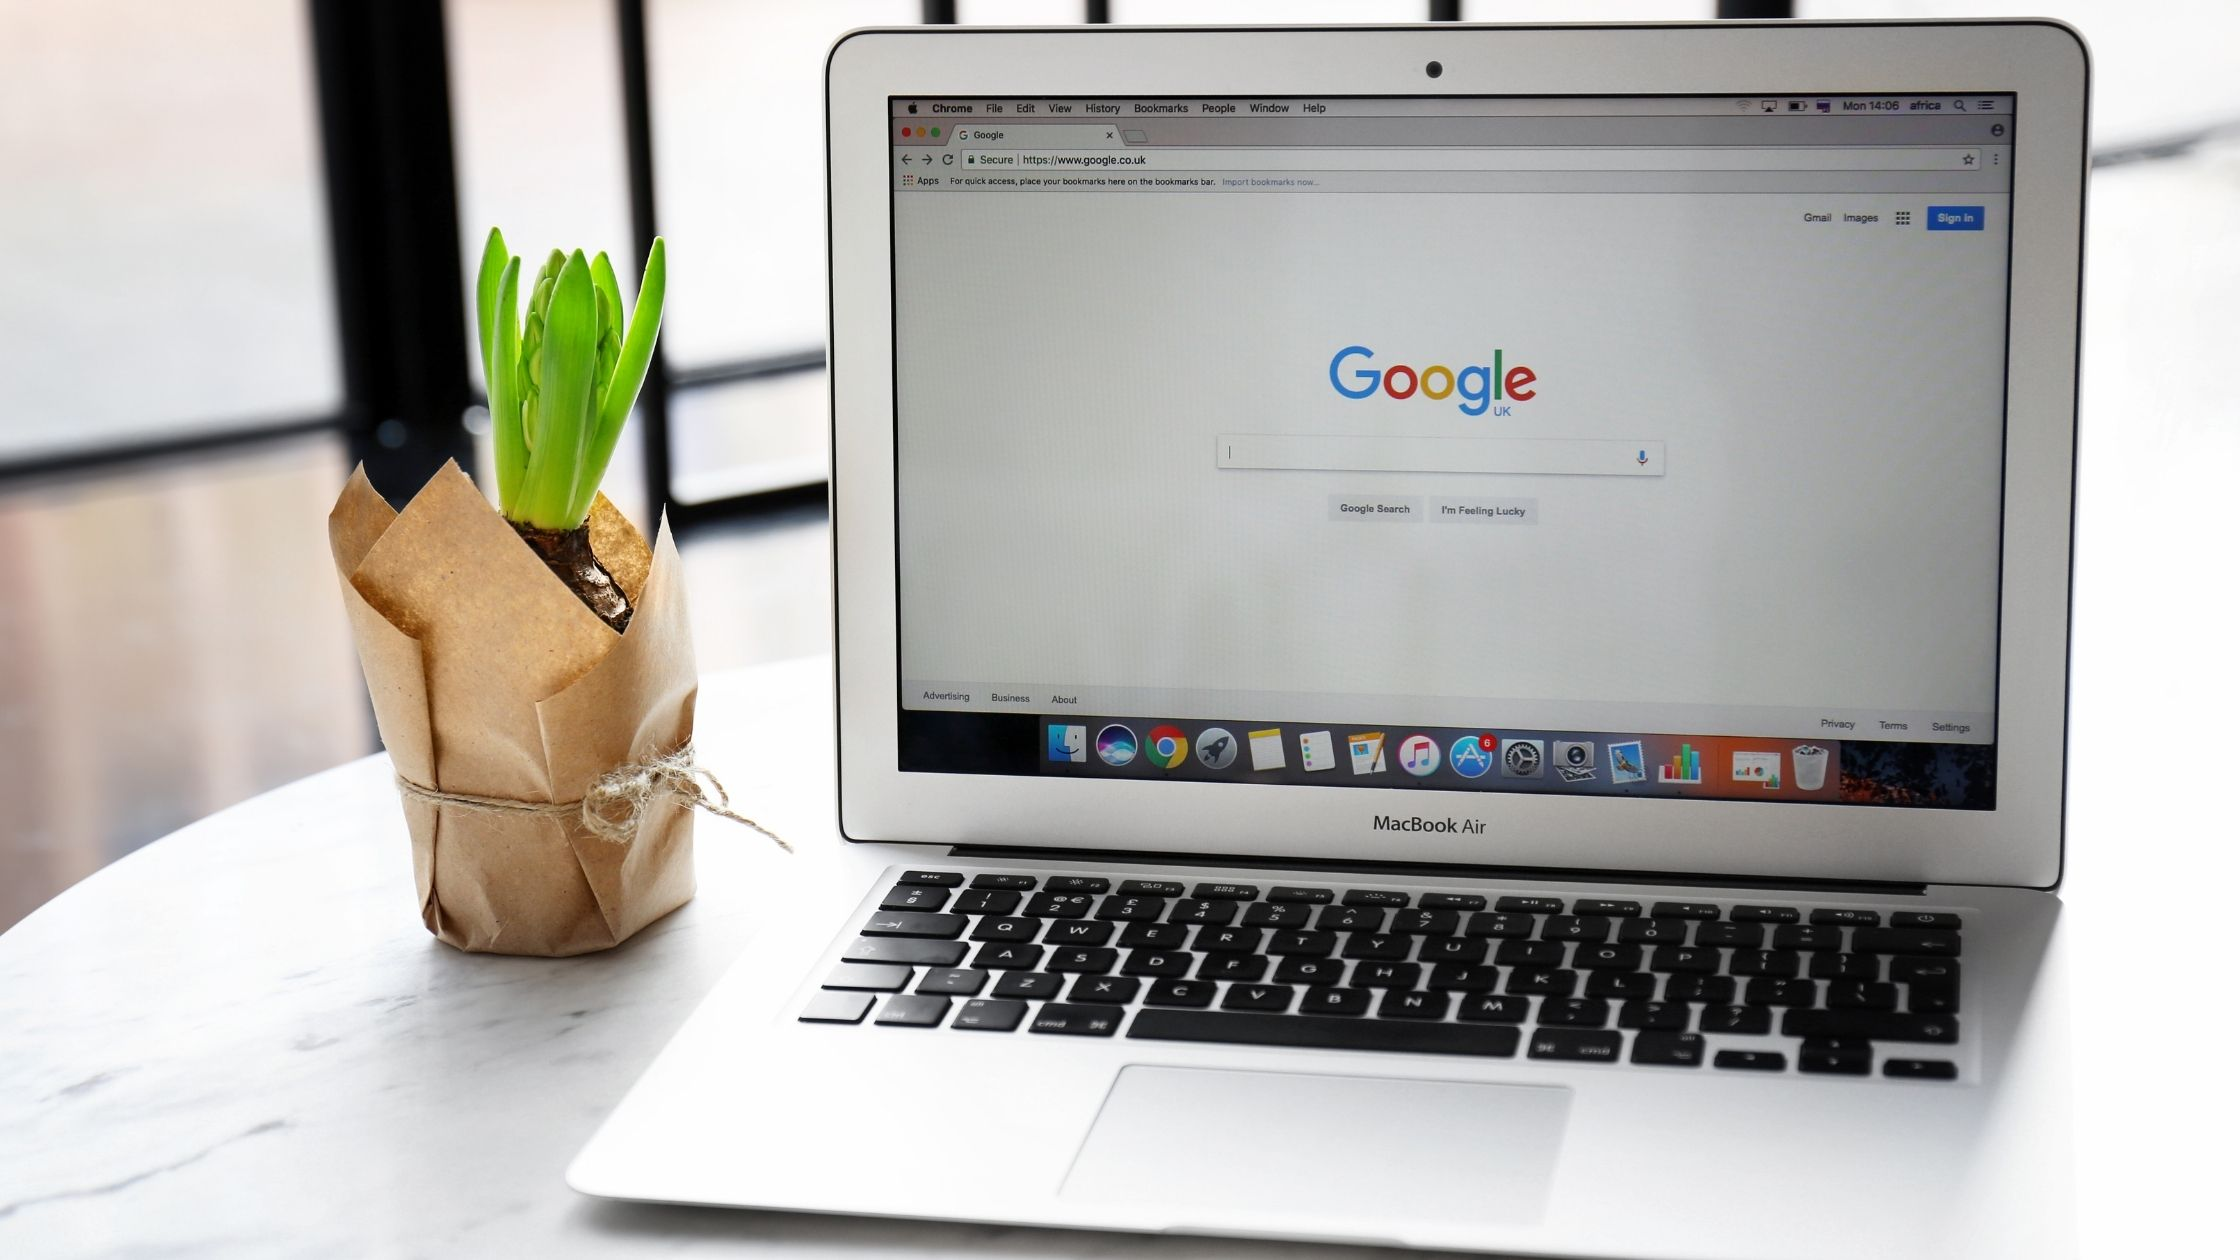 search results affect online reputation